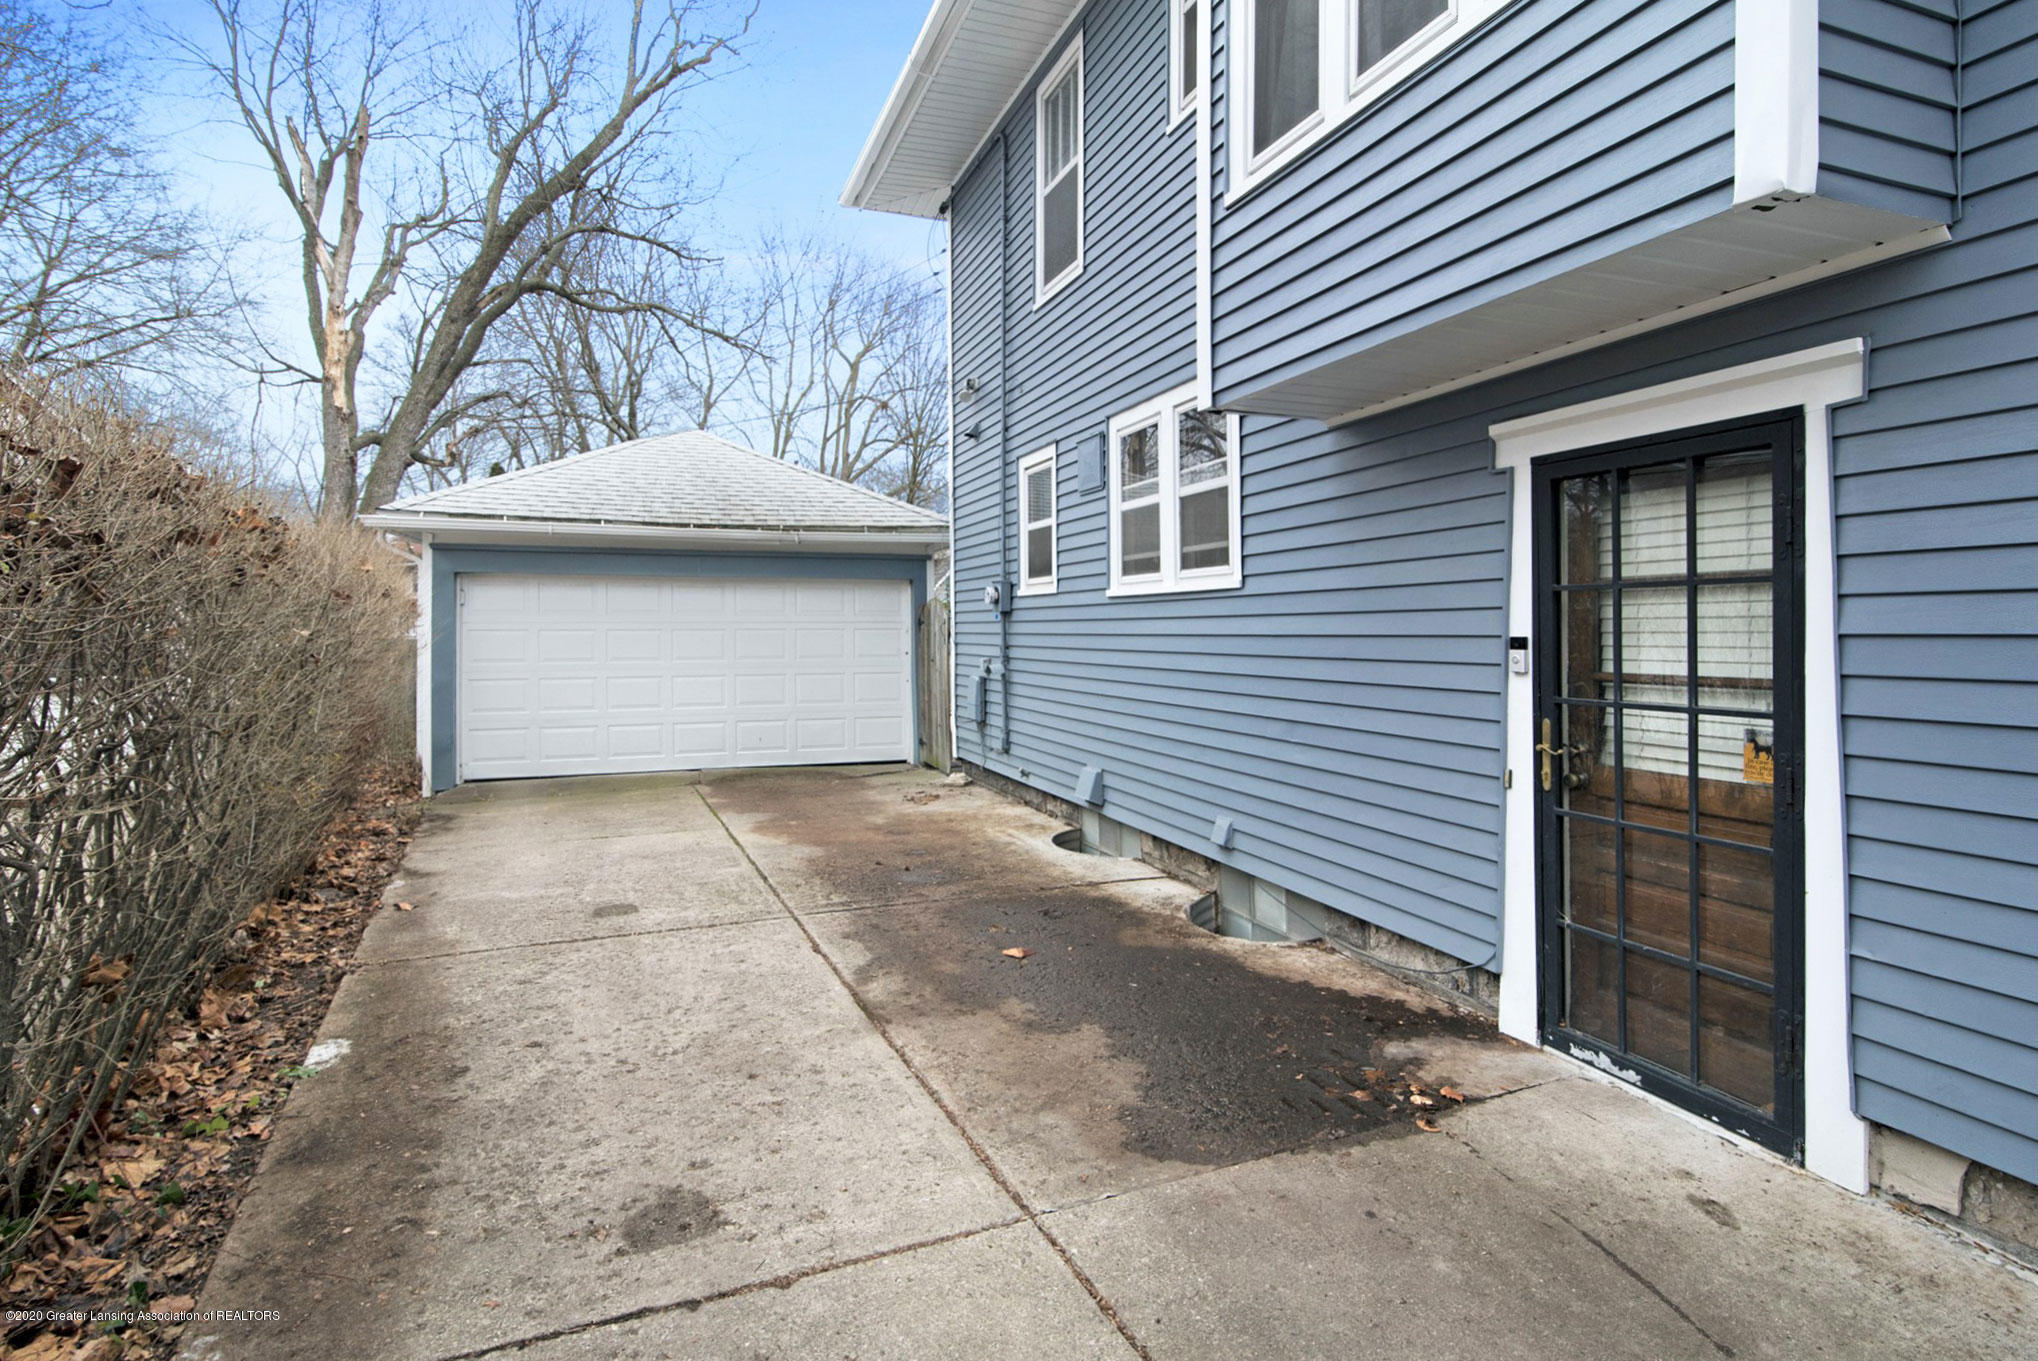 1131 S Genesee Dr - 34 - 33